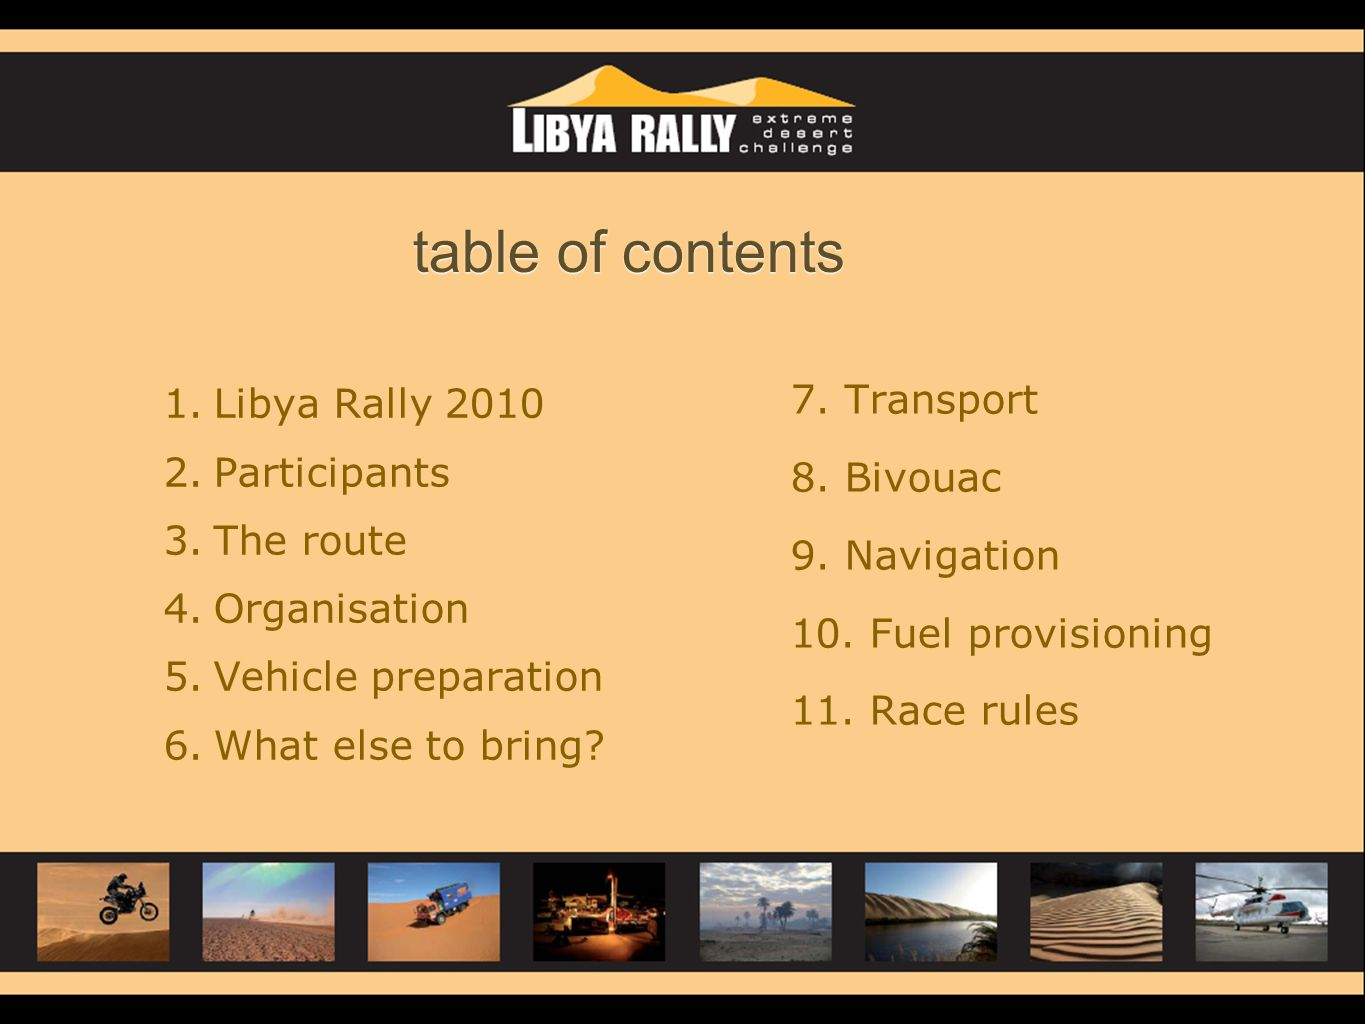 table of contents 1. Libya Rally 2010 2. Participants 3. The route 4. Organisation 5. Vehicle preparation 6. What else to bring? 7. Transport 8. Bivou